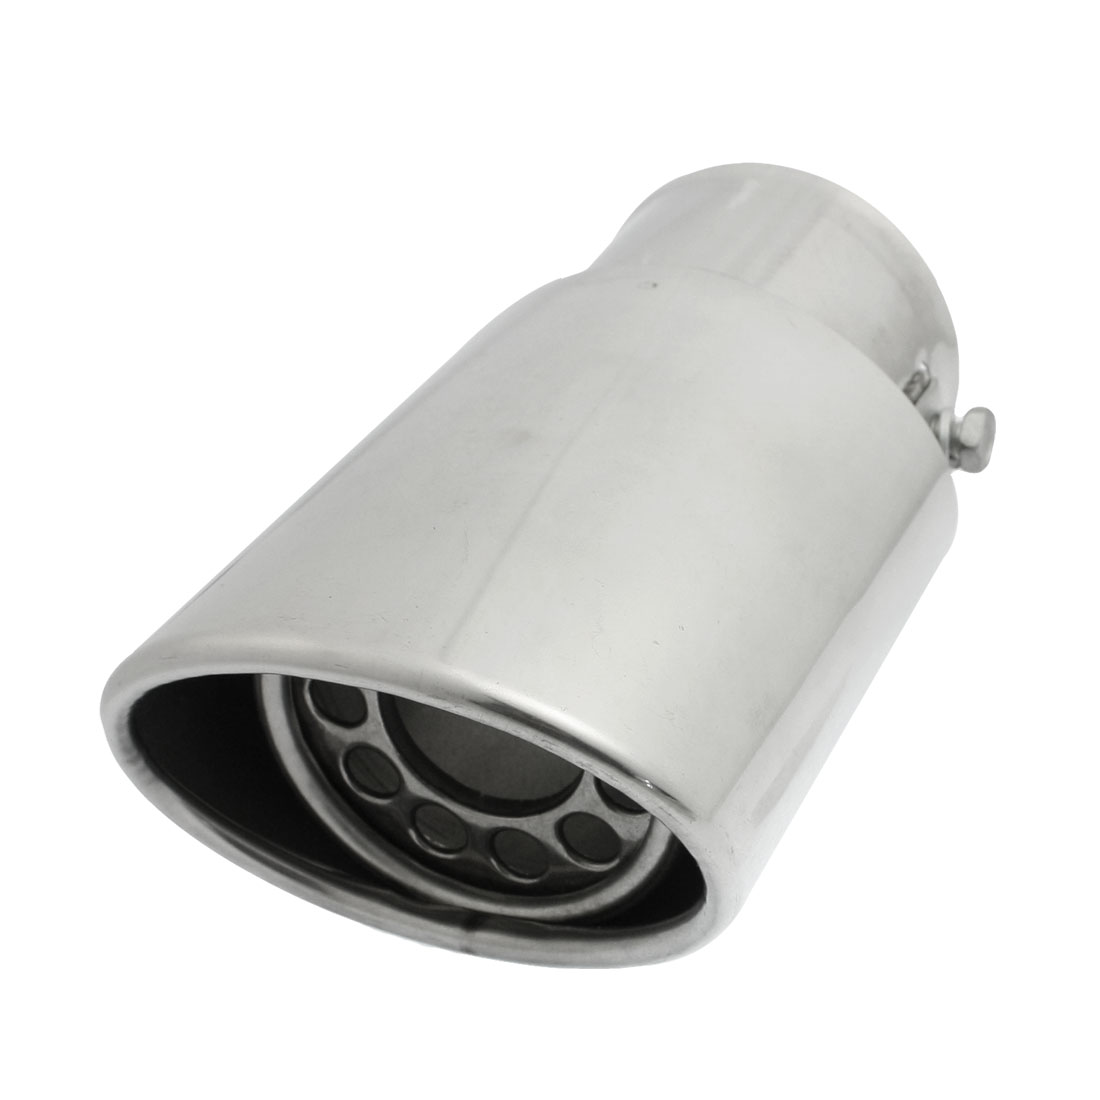 "Silver Tone 2.4"" Dia Inlet Exhaust Pipe Silencer Tail Muffler Tip"